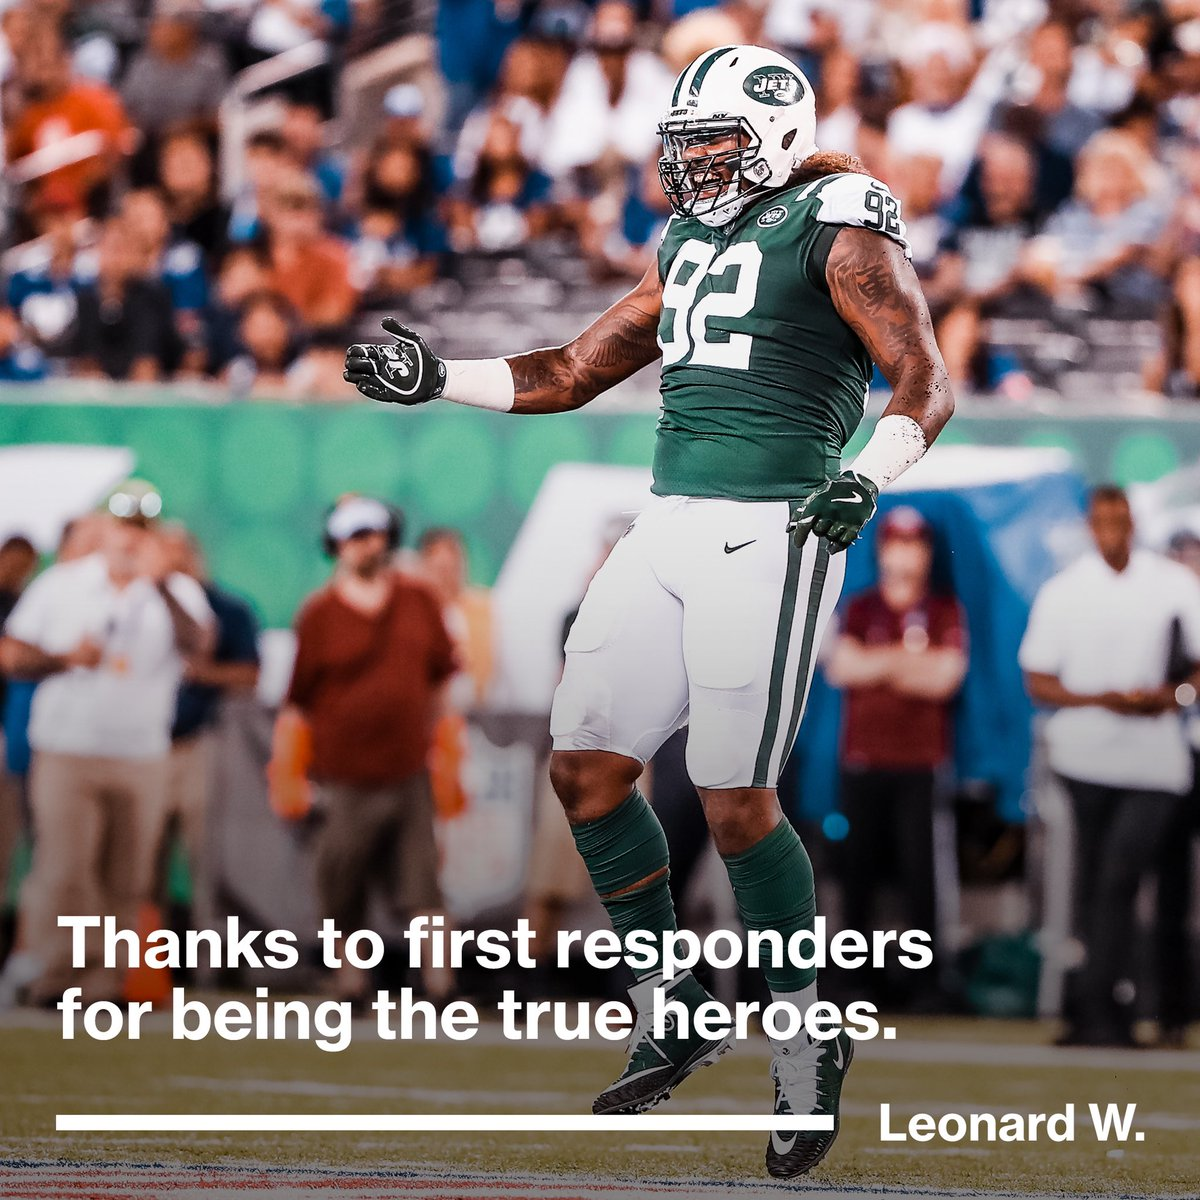 e6f487d59b6fa Join me in giving  AllOurThanks to first responders for always answering  the call. Share your thanks at http   AllOurThanks.com .  adpic.twitter.com   ...